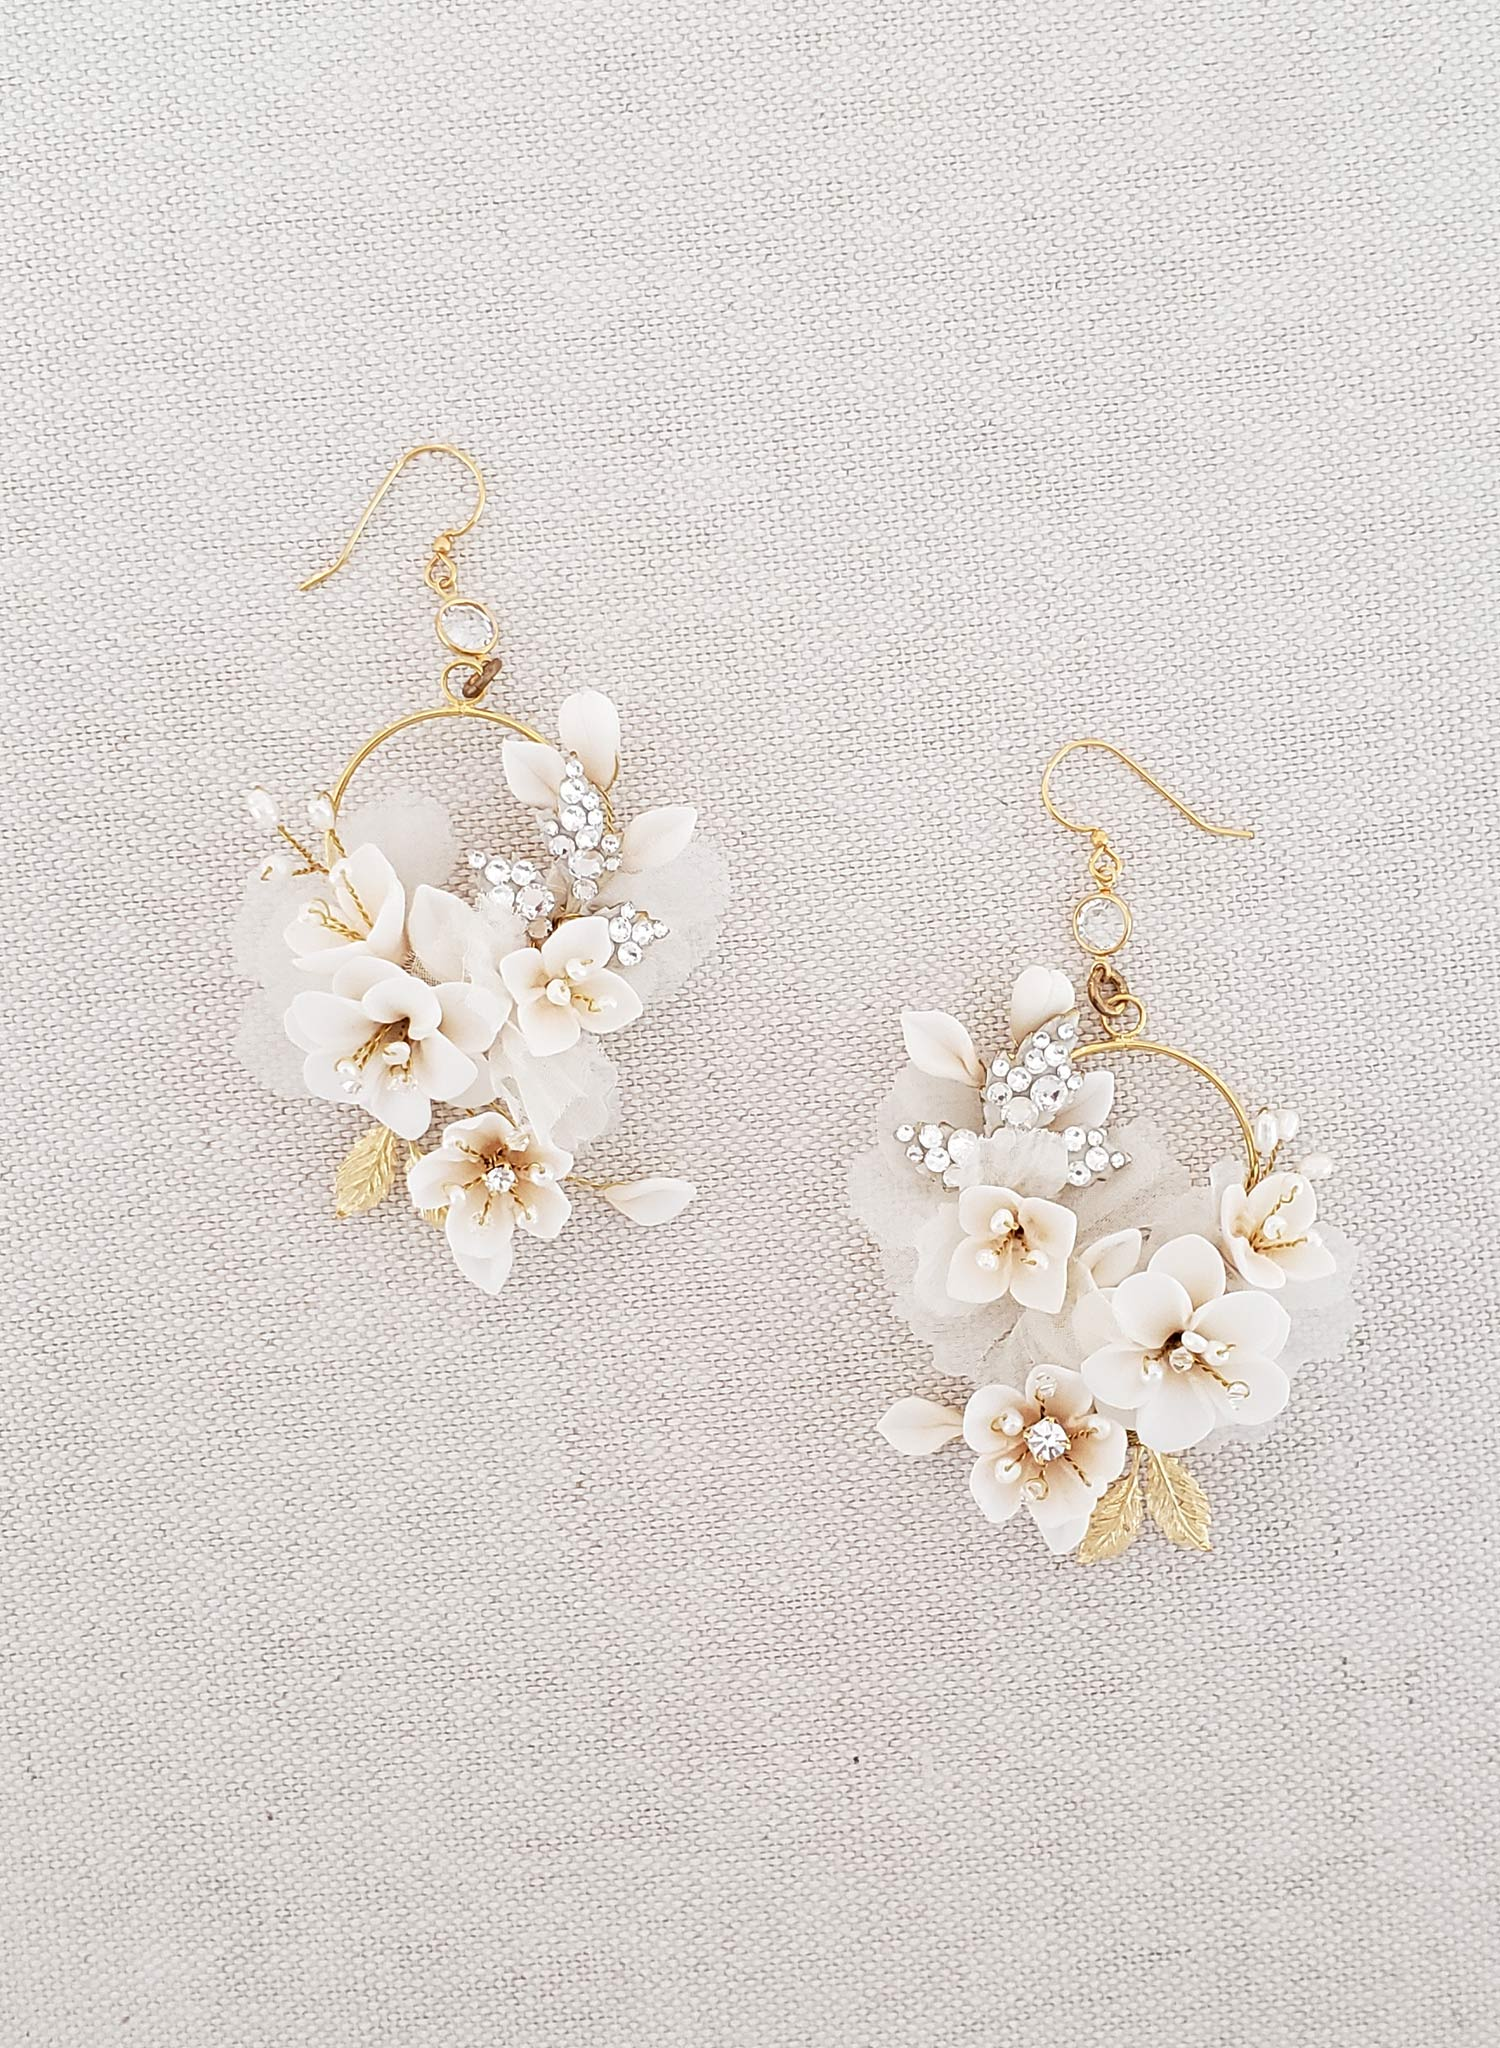 Creamy blossom and silk flower earrings - Style #951